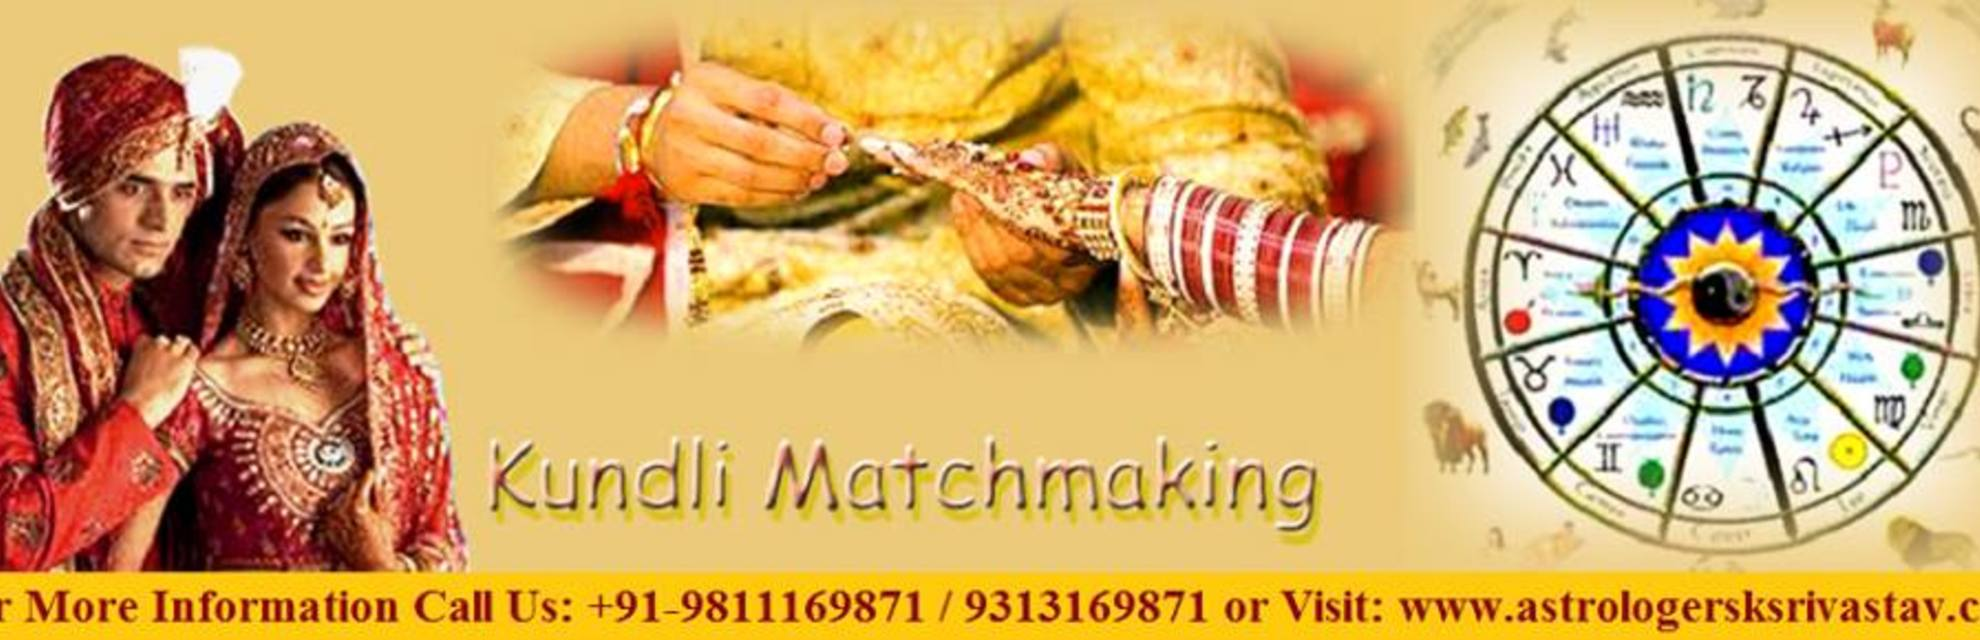 free vedic kundli matchmaking Online kundli matchmaking free in hindi in vedic astrology, the concept of kundli matching or horoscope matching is very eminent what our customers say.